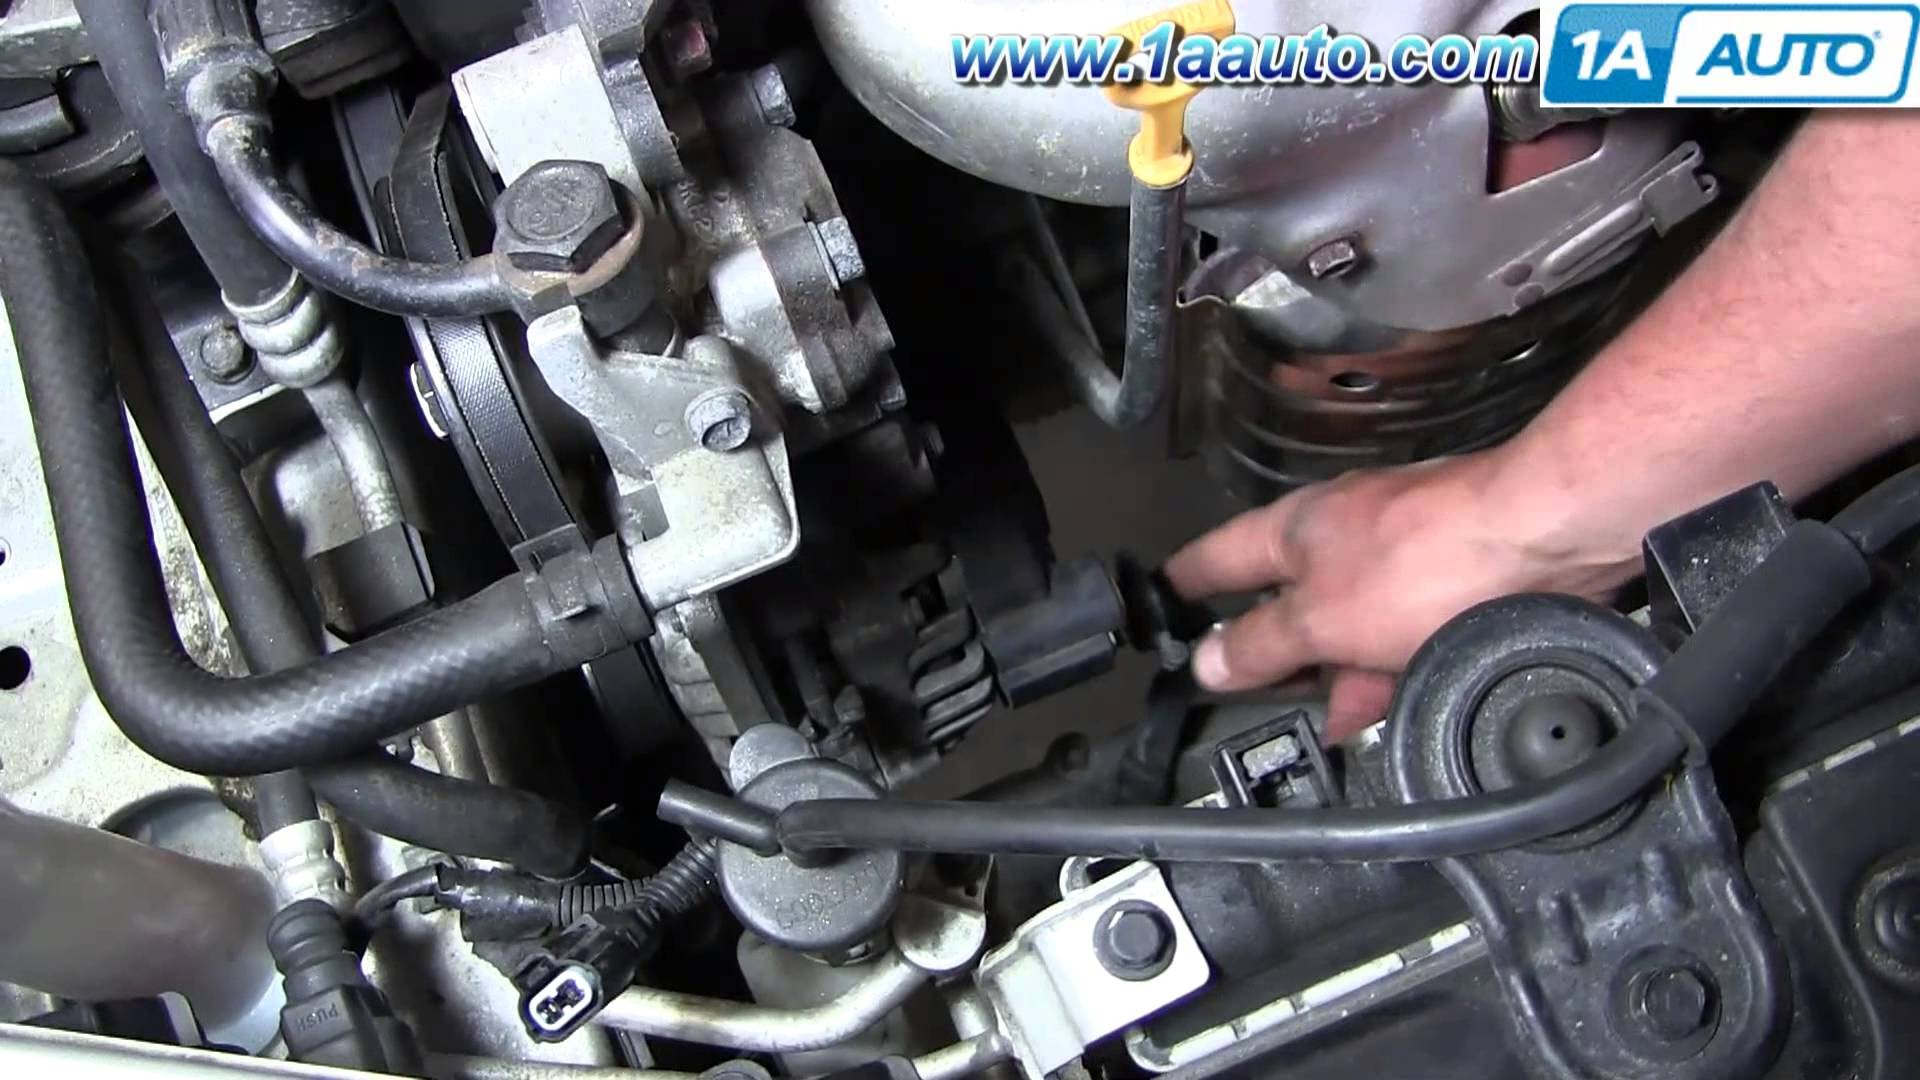 2009 Hyundai Accent Engine Diagram How to Install Replace Alternator 2001 06 Hyundai Elantra 2 0l Of 2009 Hyundai Accent Engine Diagram